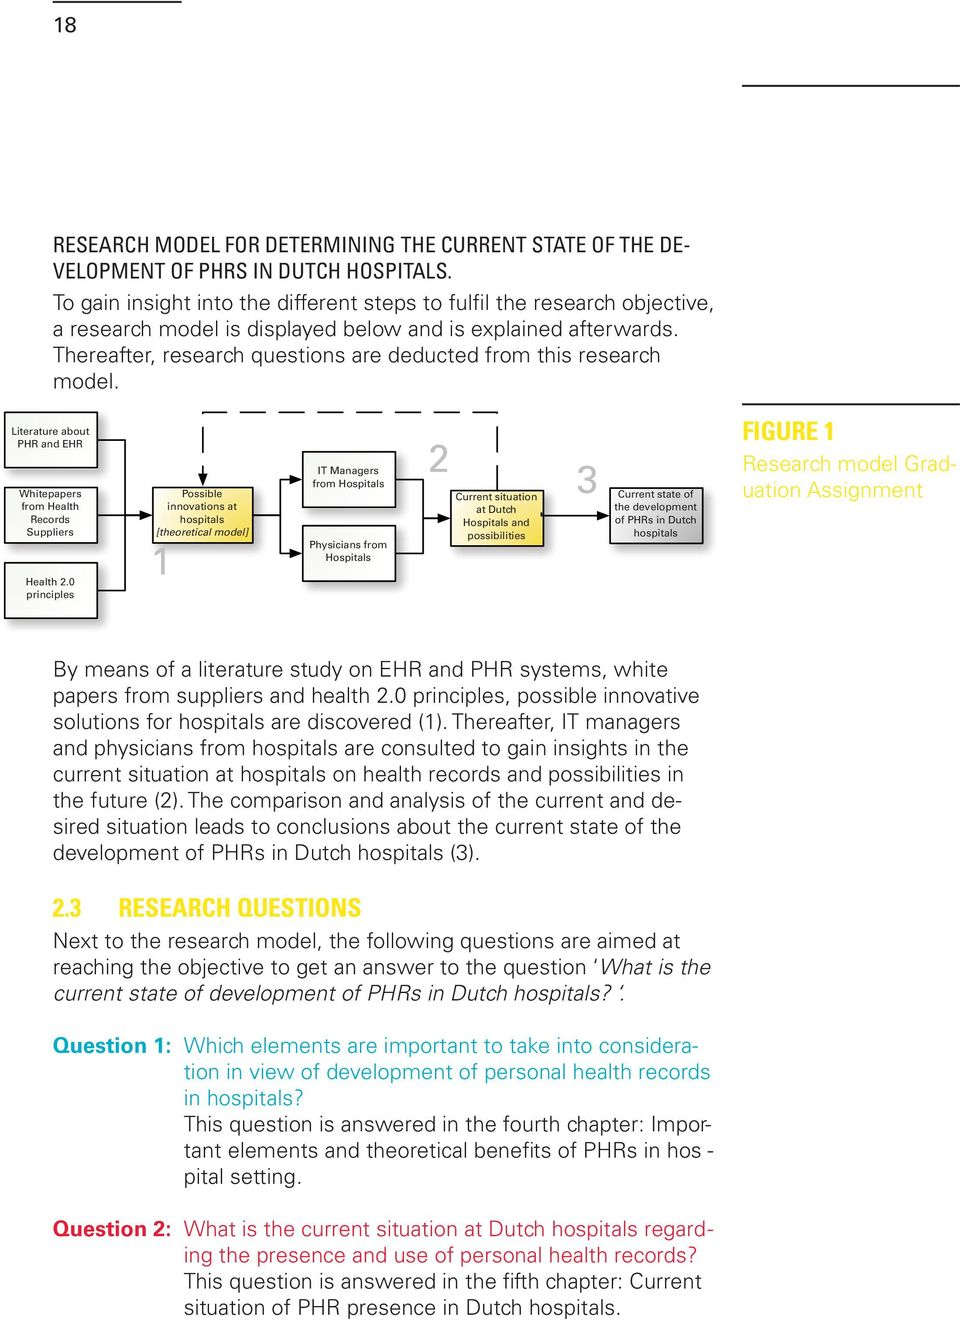 Thereafter, research questions are deducted from this research model. Literature about PHR and EHR Whitepapers from Health Records Suppliers Health 2.